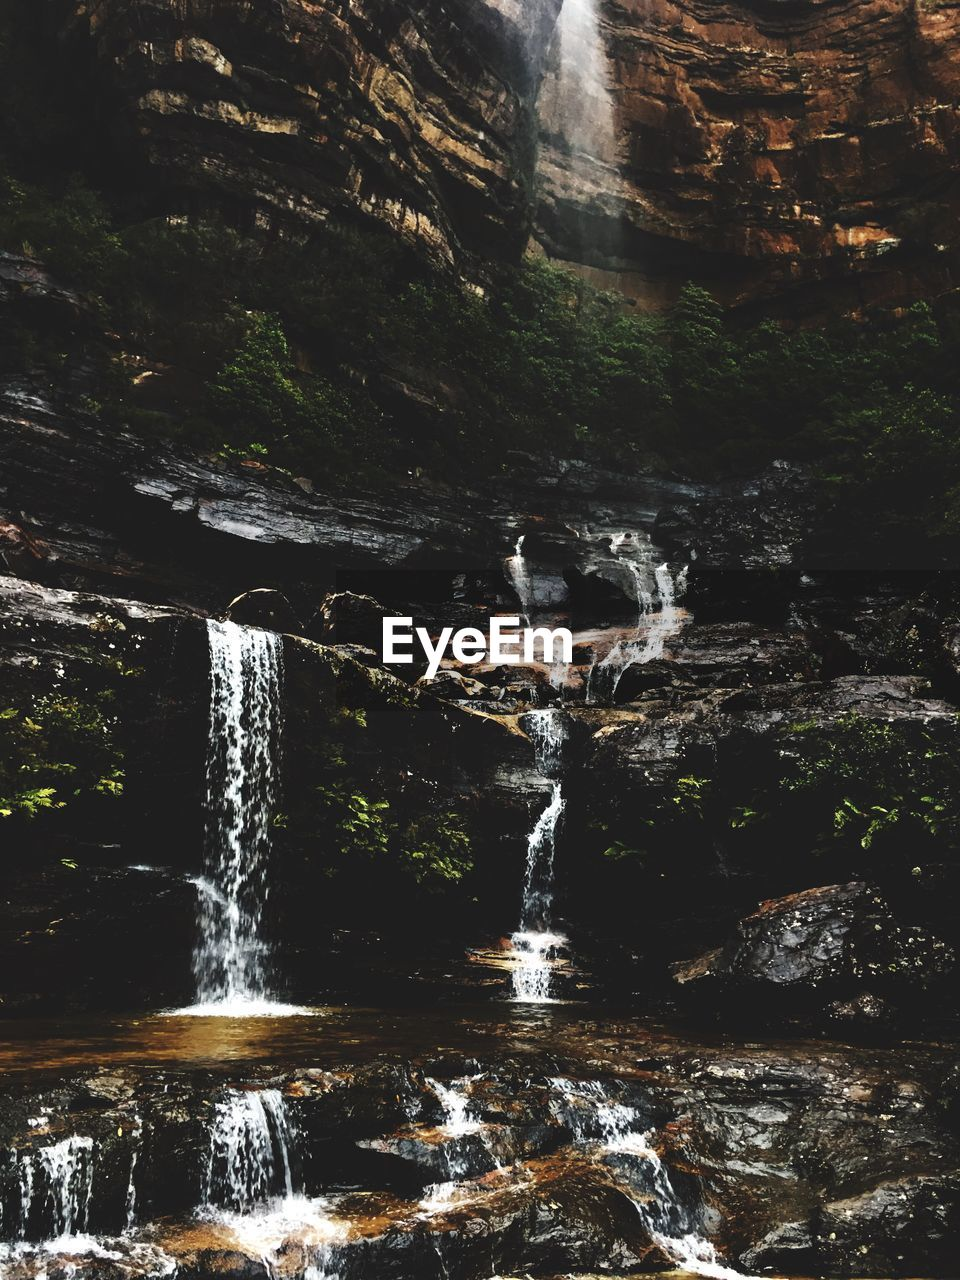 water, waterfall, flowing water, scenics - nature, beauty in nature, motion, rock, long exposure, nature, solid, rock - object, flowing, no people, blurred motion, forest, day, outdoors, environment, rock formation, falling water, power in nature, running water, rainforest